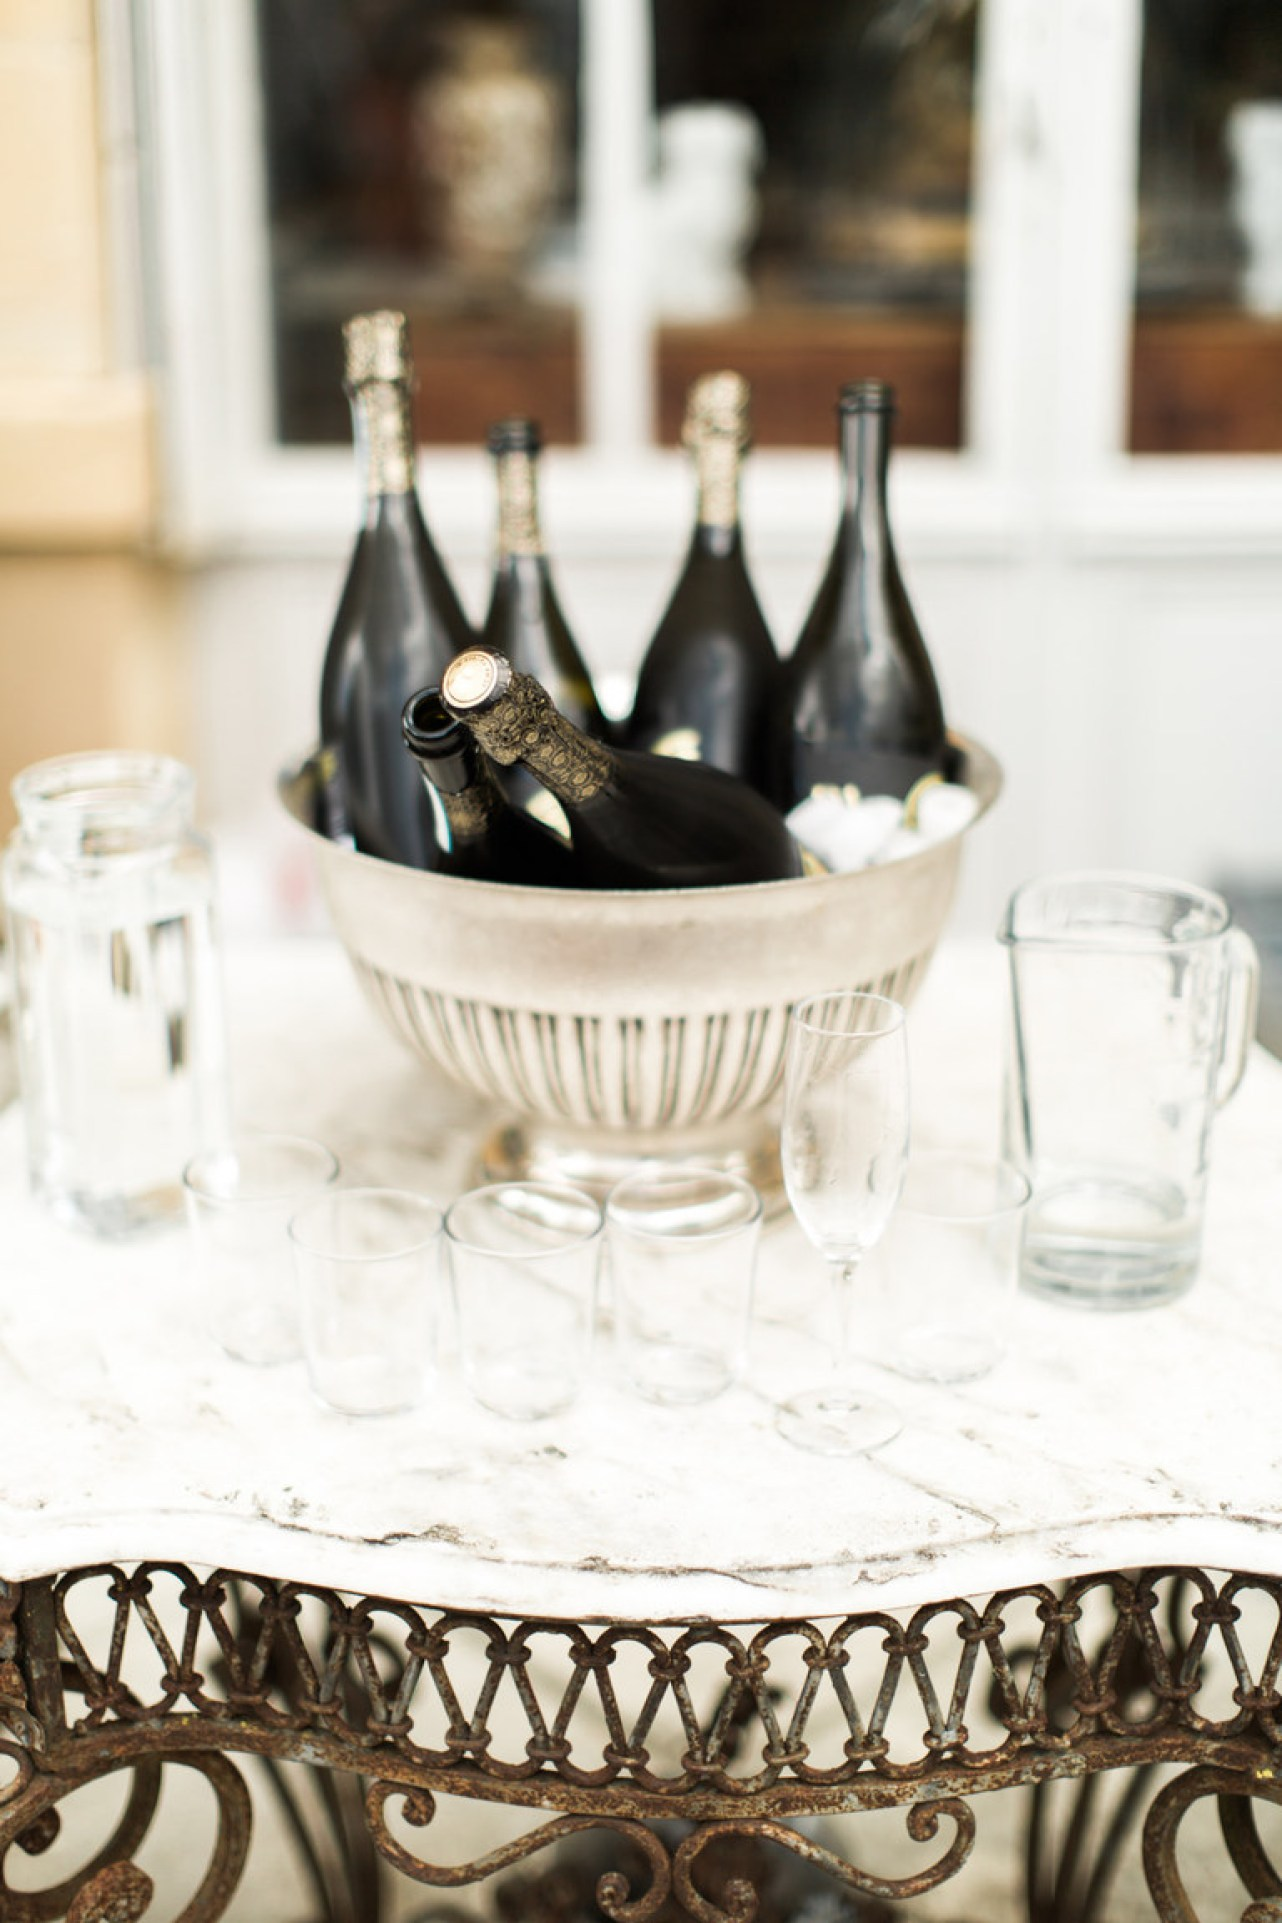 Wedding Champagne Reception at Chateau la Durantie in France